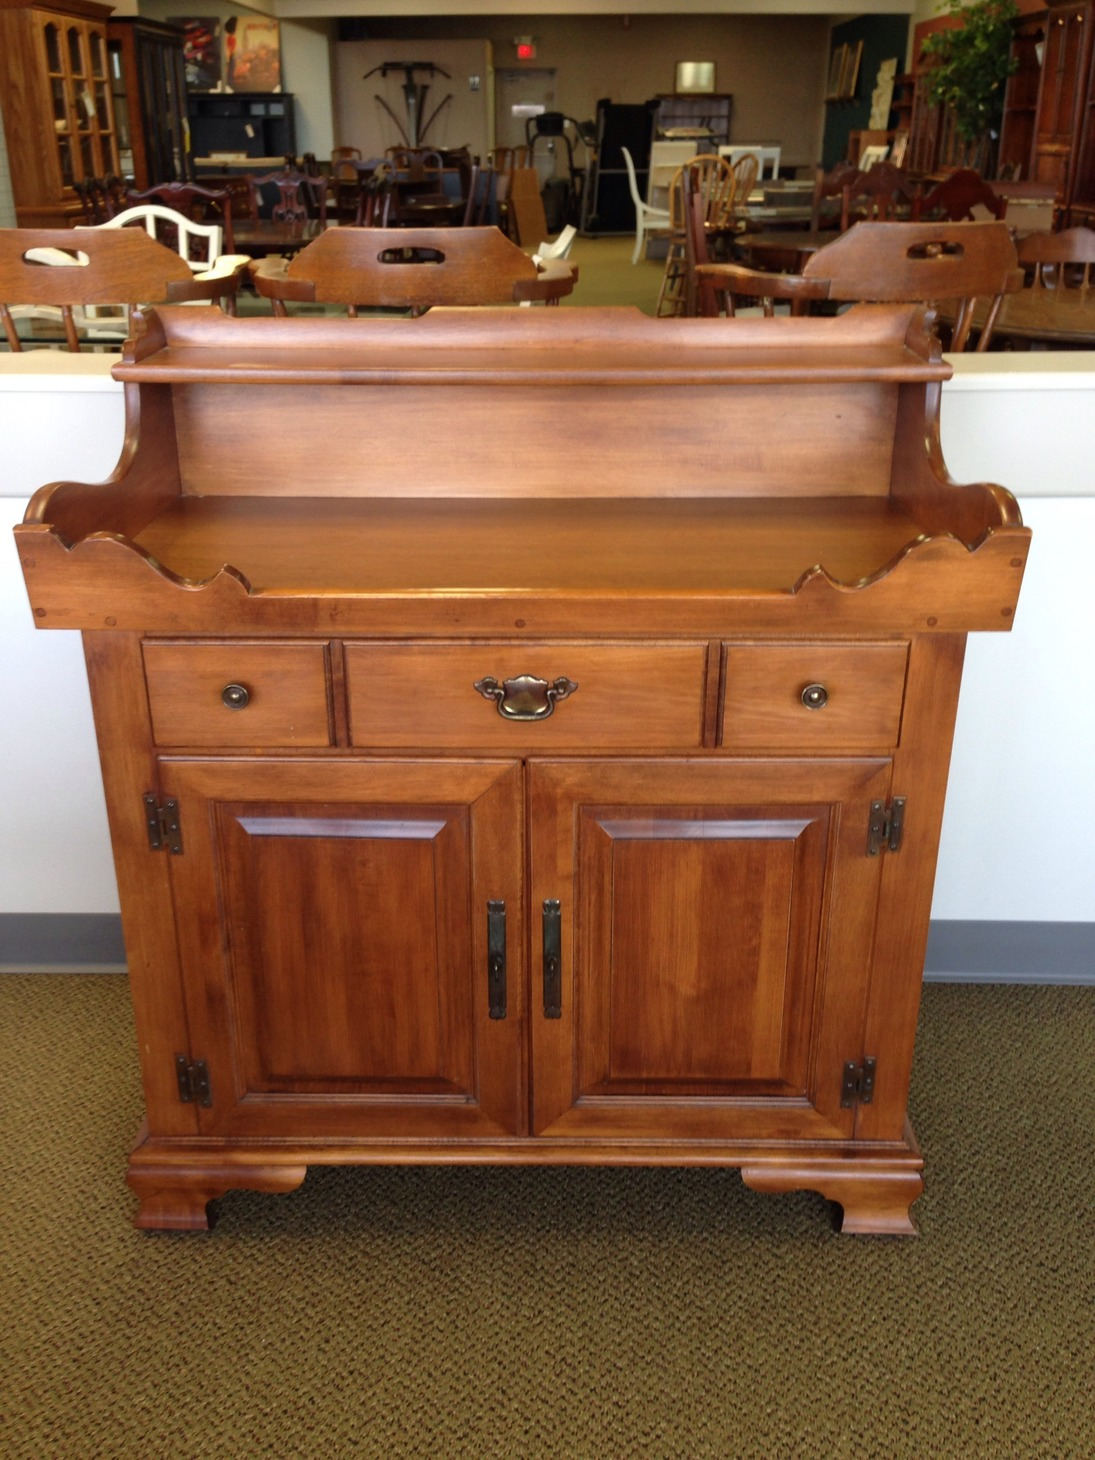 TELL CITY MAPLE DRY SINK Allegheny Furniture Consignment